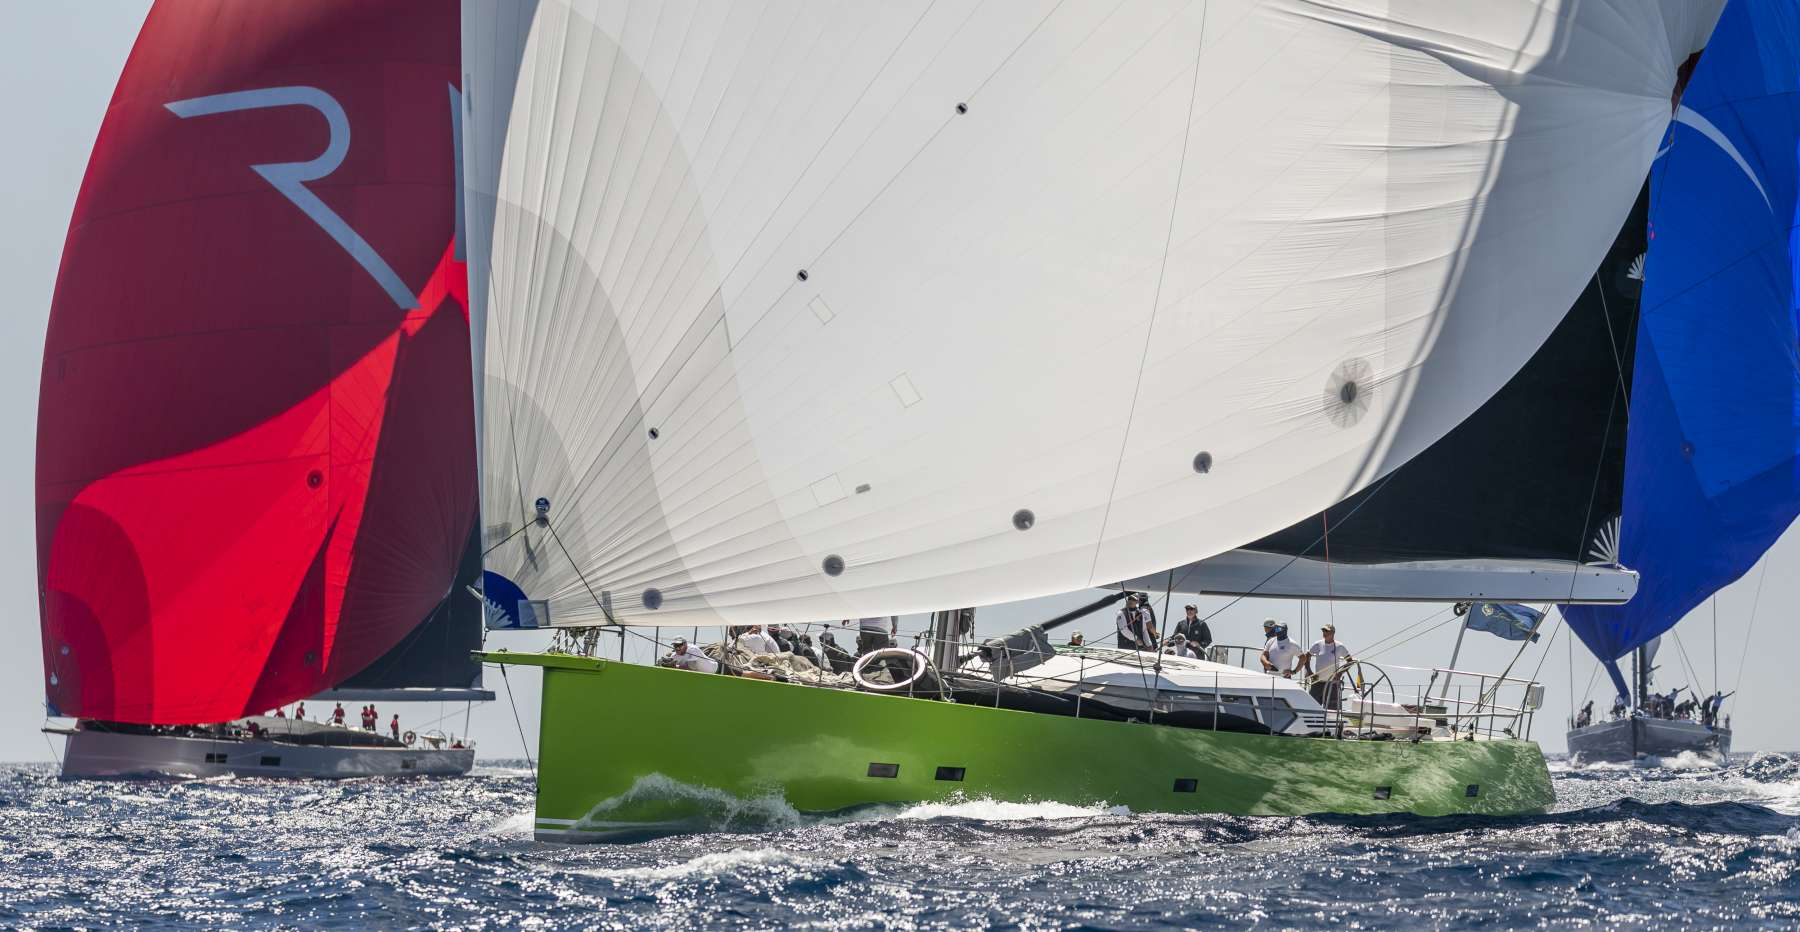 Loro Piana Superyacht Regatta Glorious Second Day in Costa Smeralda - NEWS - Yacht Club Costa Smeralda